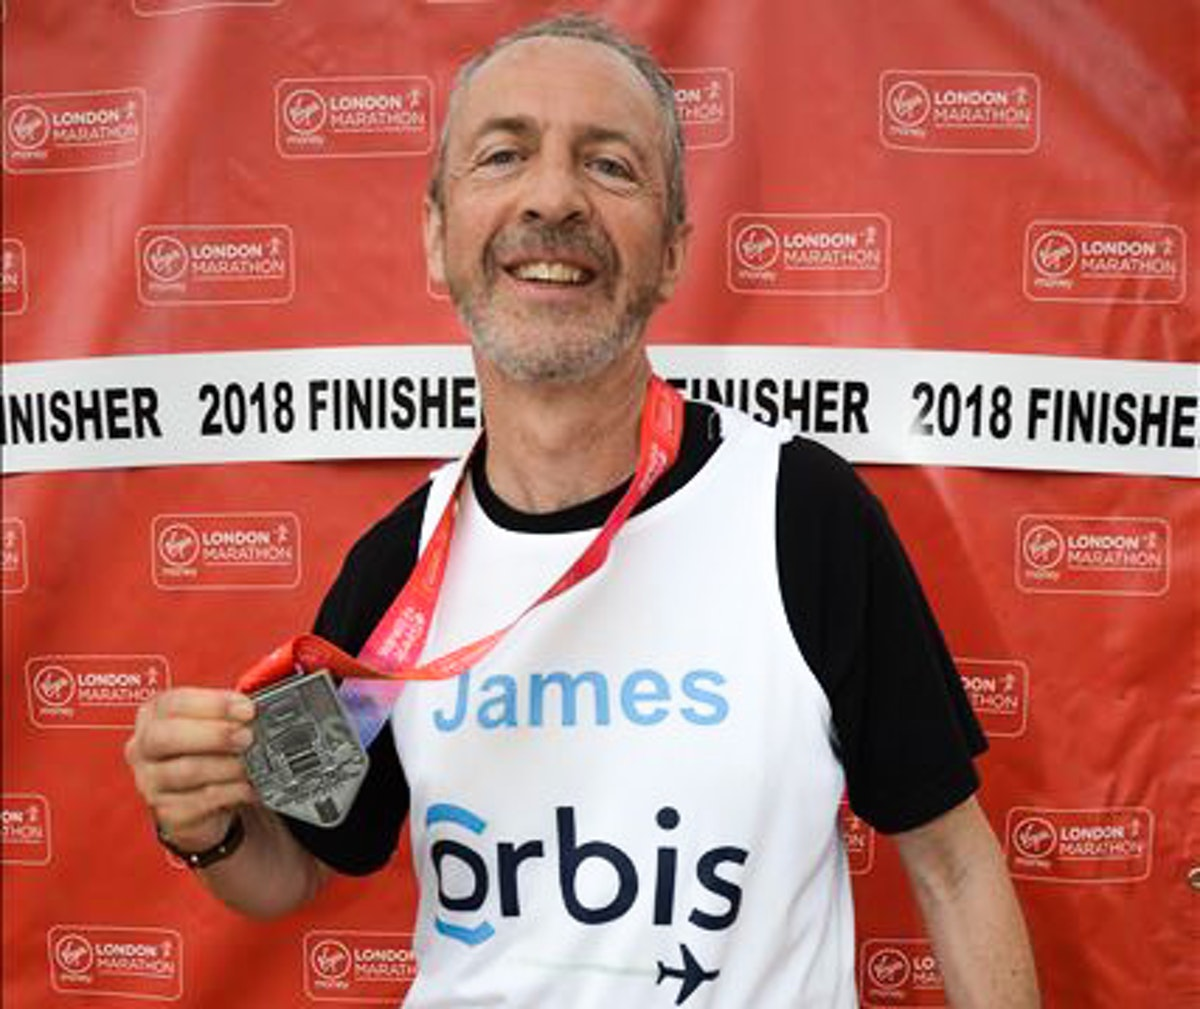 James, the London marathoner, brandishes his finishing medal